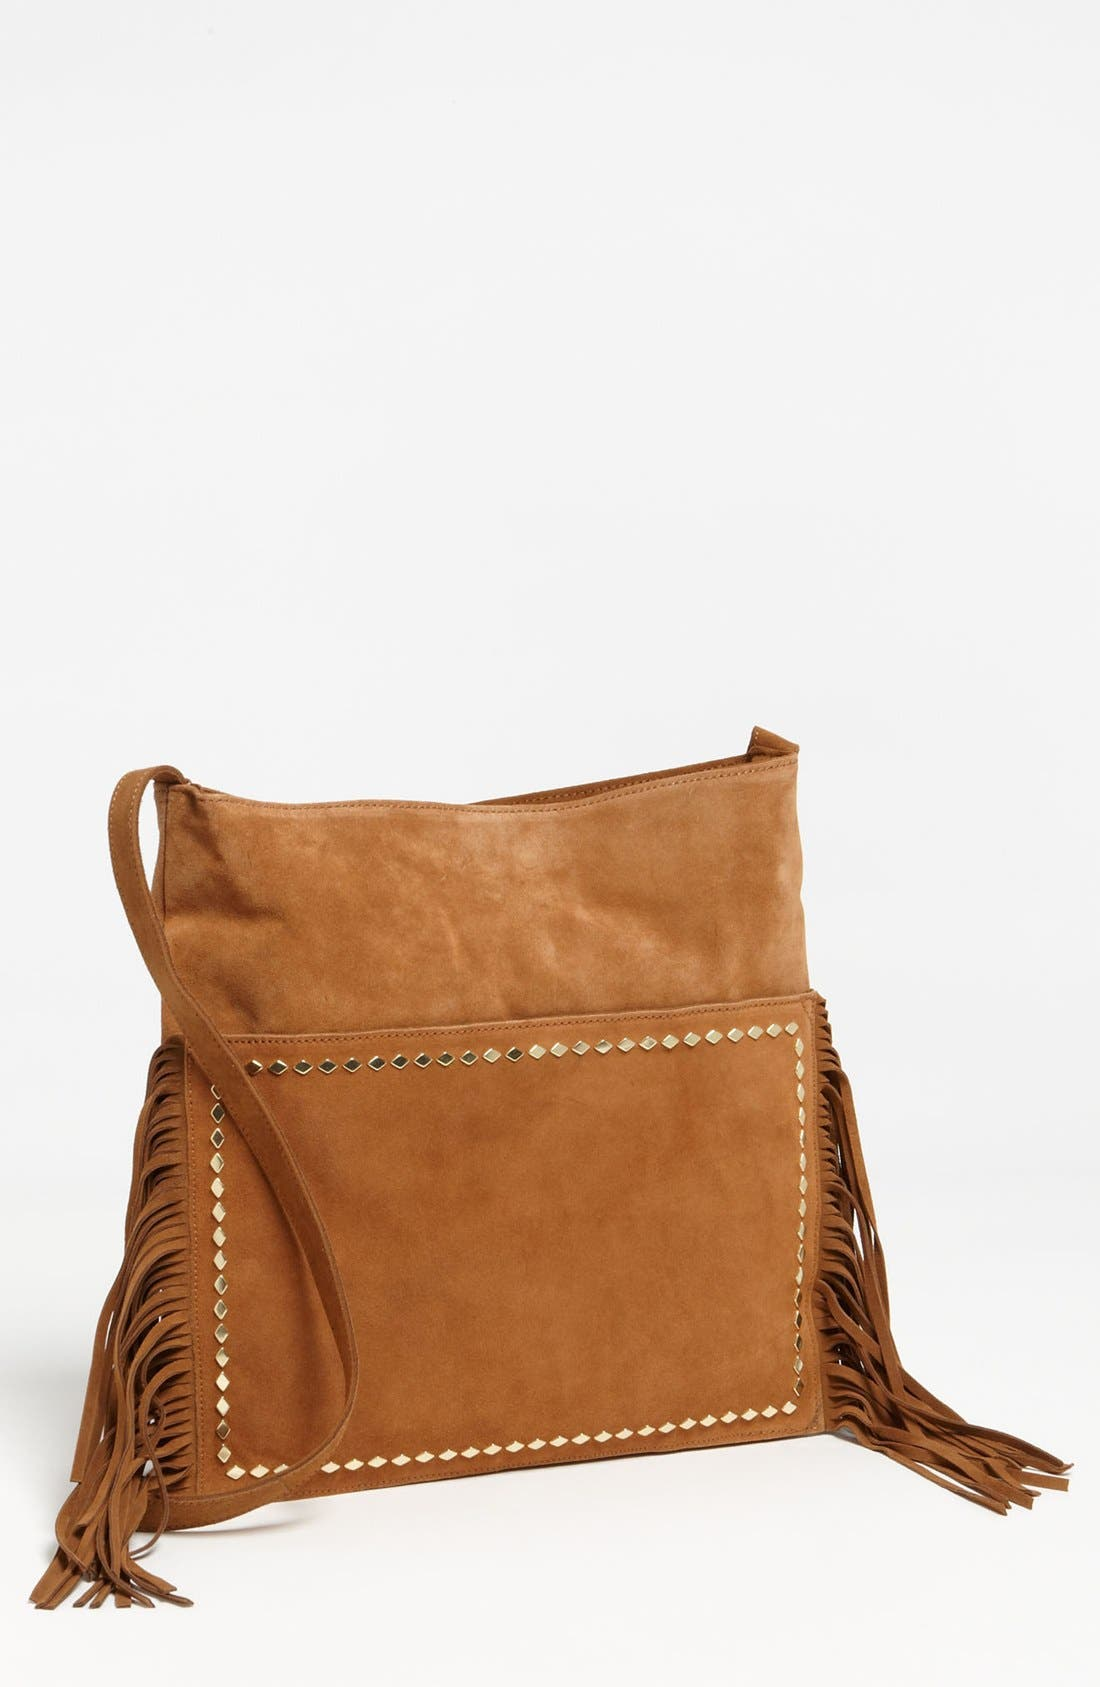 Main Image - Steve Madden Fringed Suede Crossbody Bag